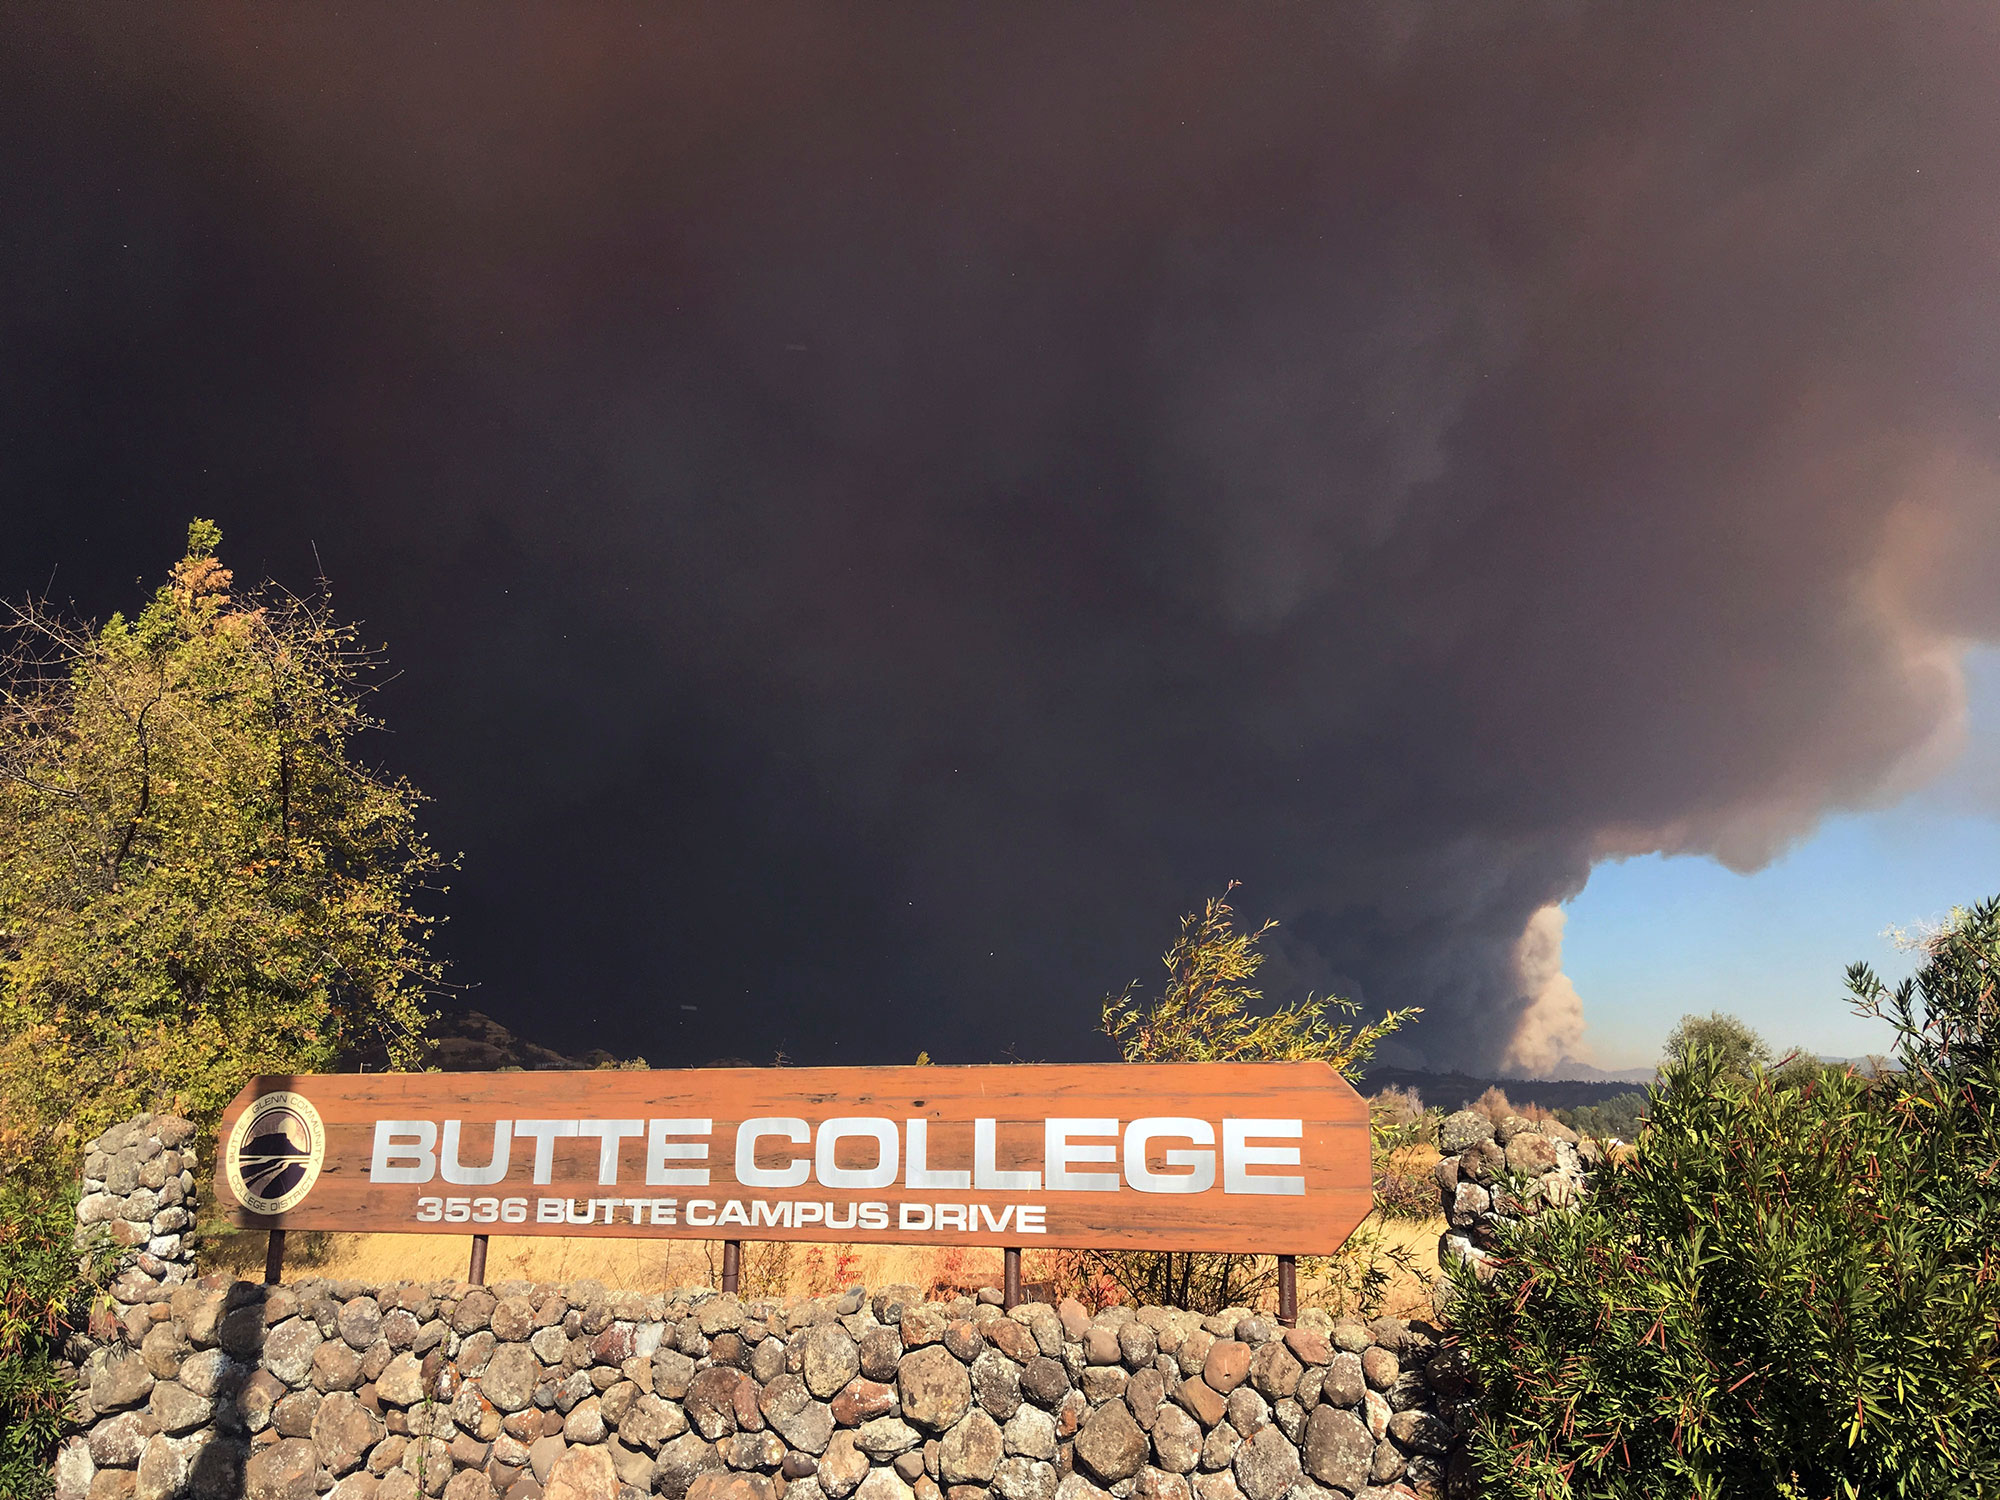 <div class='meta'><div class='origin-logo' data-origin='none'></div><span class='caption-text' data-credit='Don Thompson/AP Photo'>Smoke from the Camp Fire, burning in the Feather River Canyon near Paradise, Calif., darkens the sky above the Butte College sig in Oroville, Calif., Thursday, Nov. 8, 2018.</span></div>